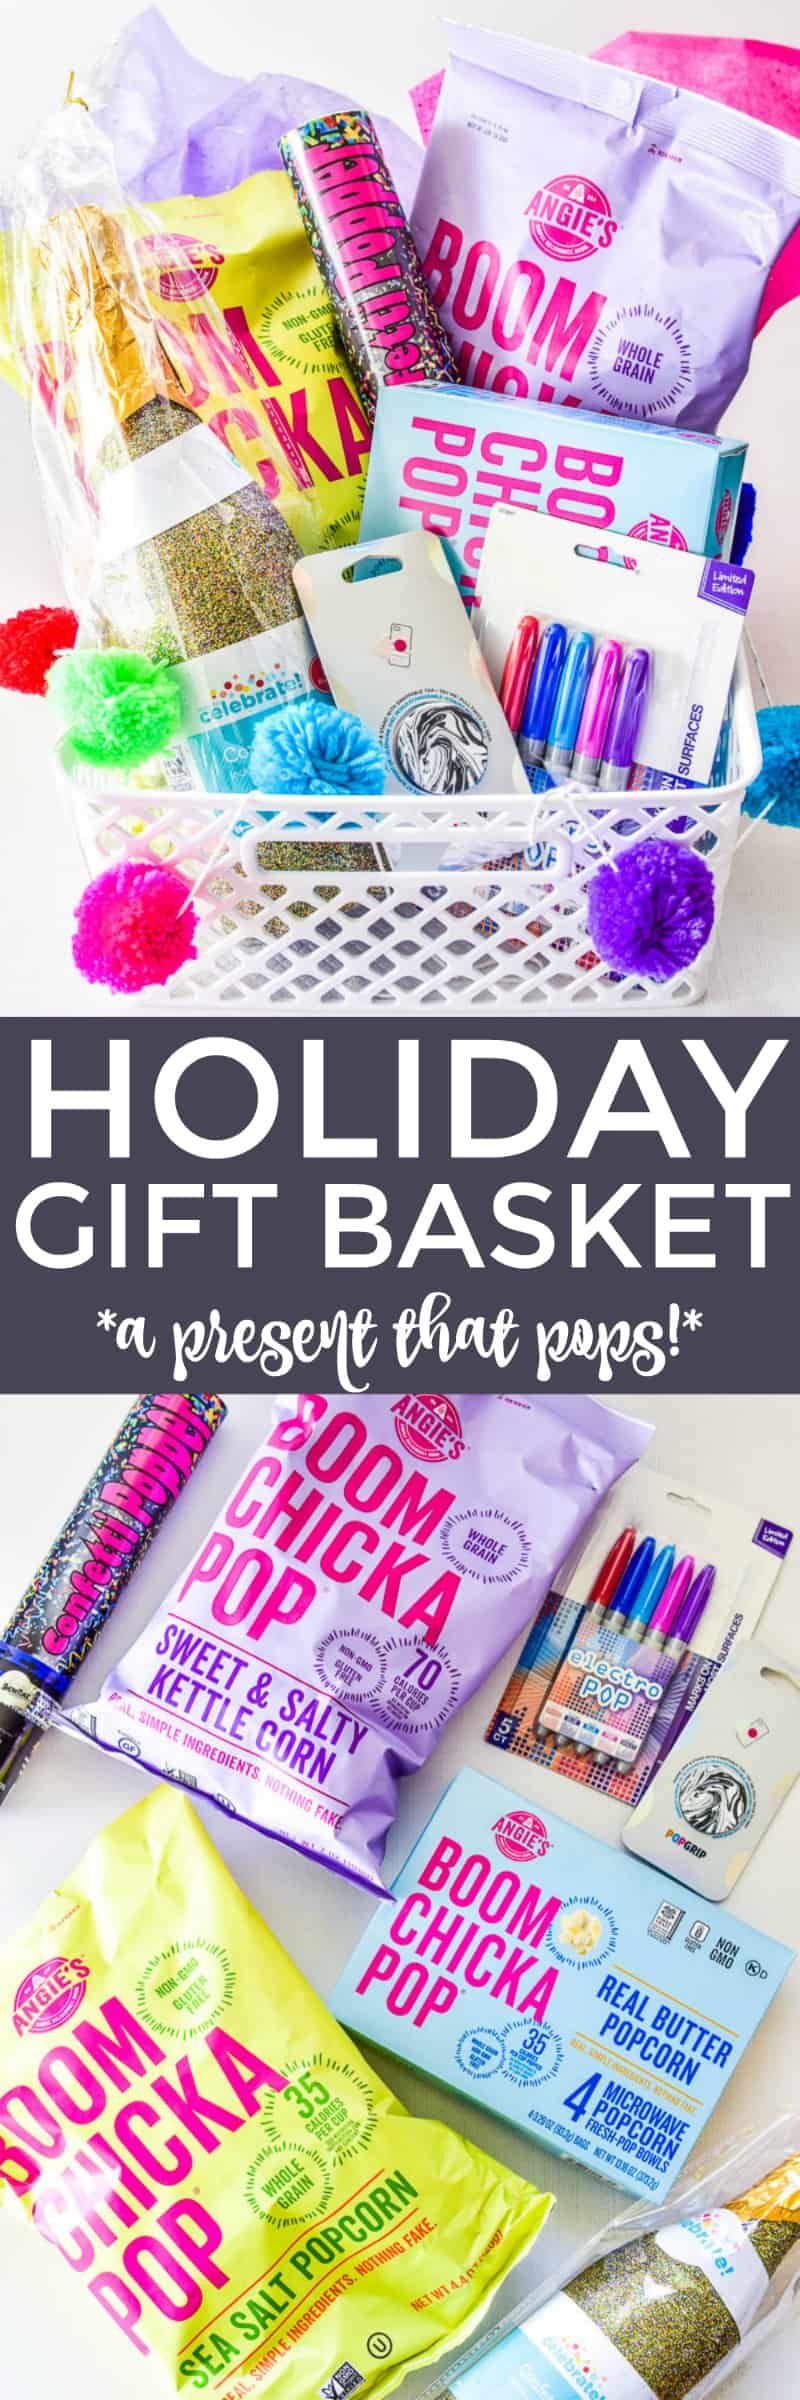 Holiday gift basket featuring Angie's Boomchickapop Popcorn